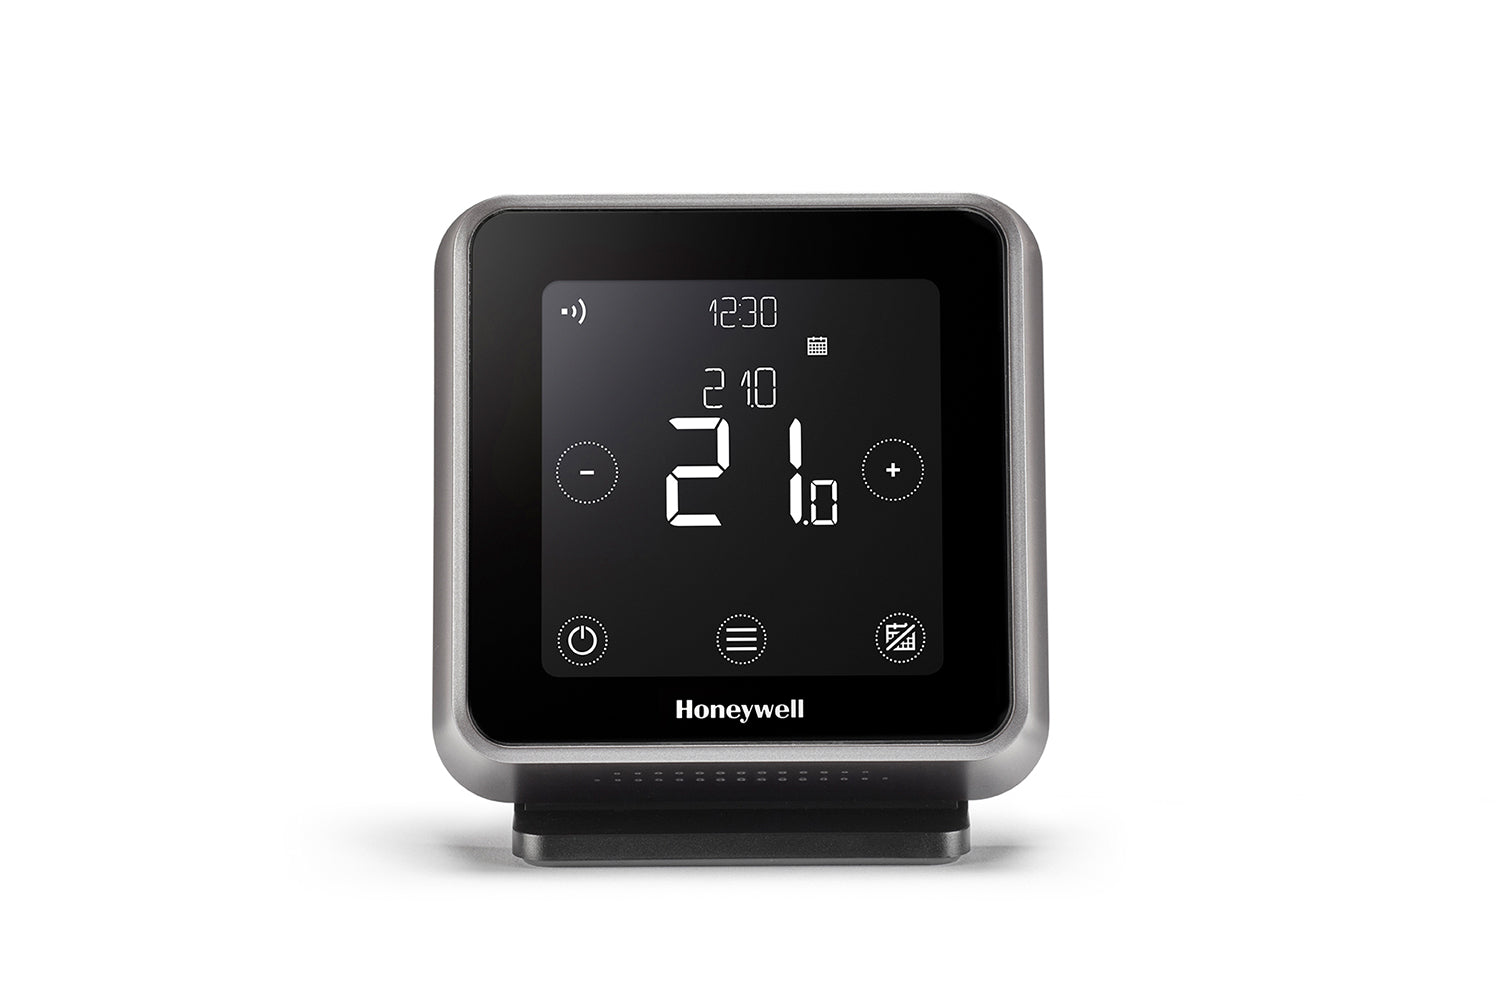 Honeywell T6R-HW Wireless Smart Thermostat With Hot Water Control (Y6H920RW4026)